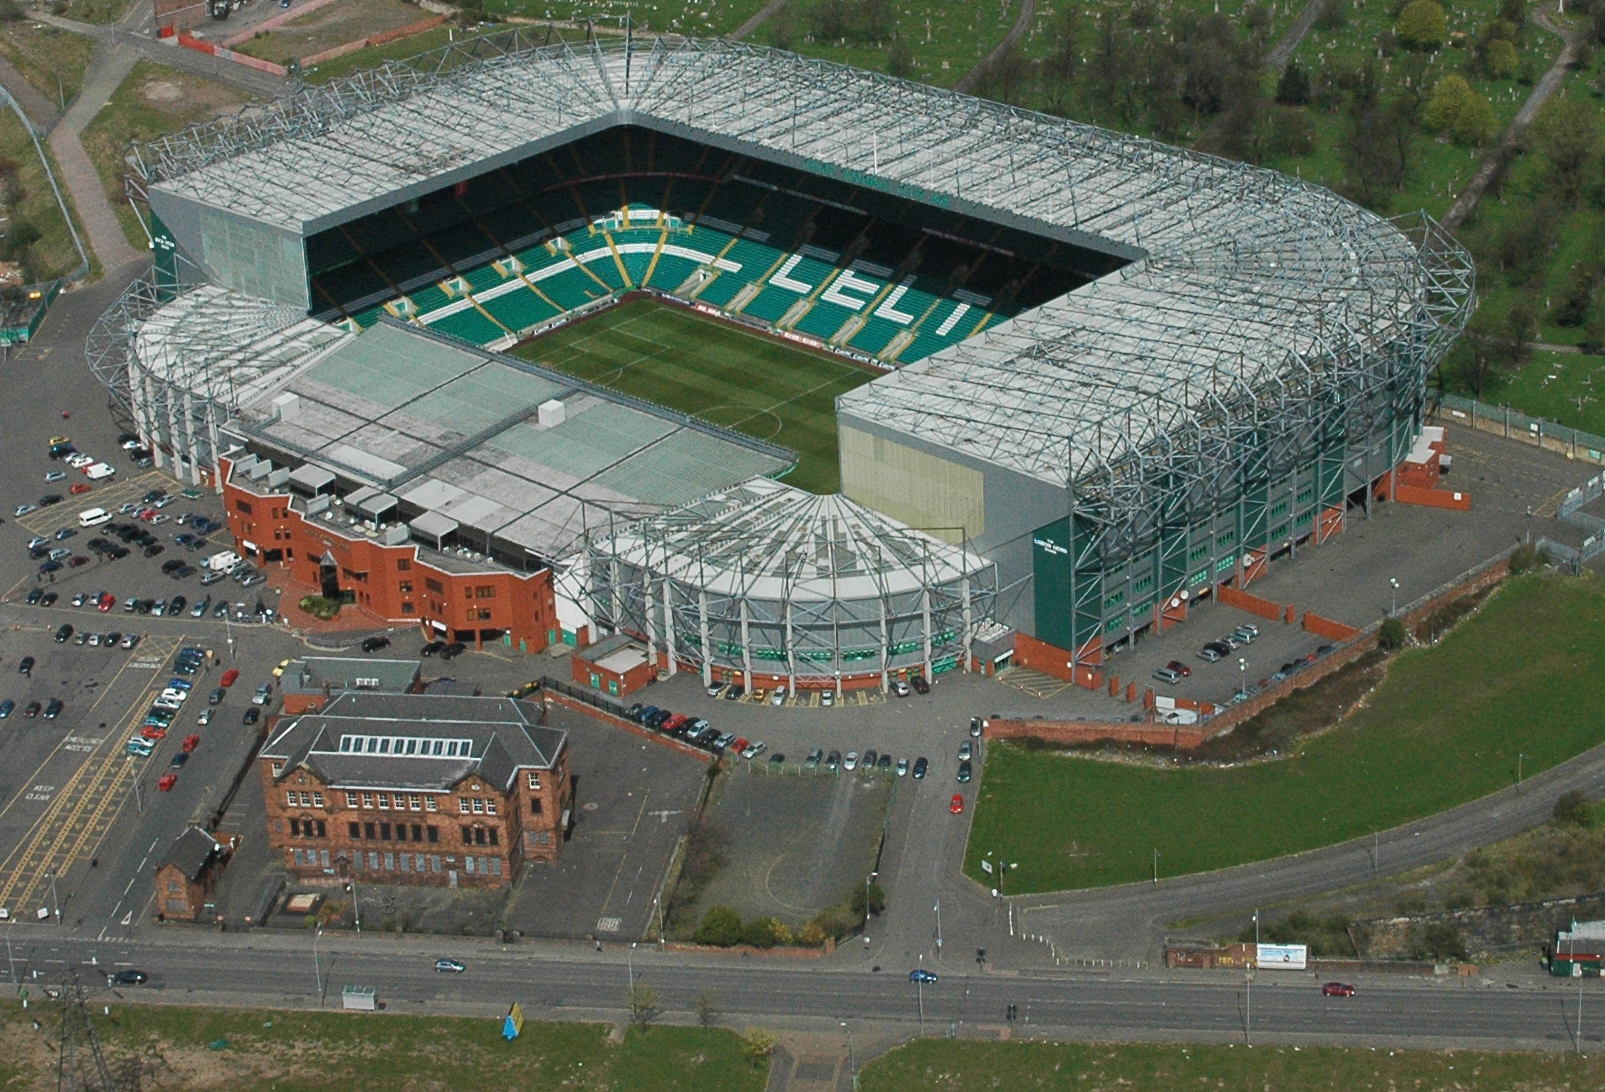 City By Football Stadium Quiz By TomScott - 10 soccer stadiums you need to visit